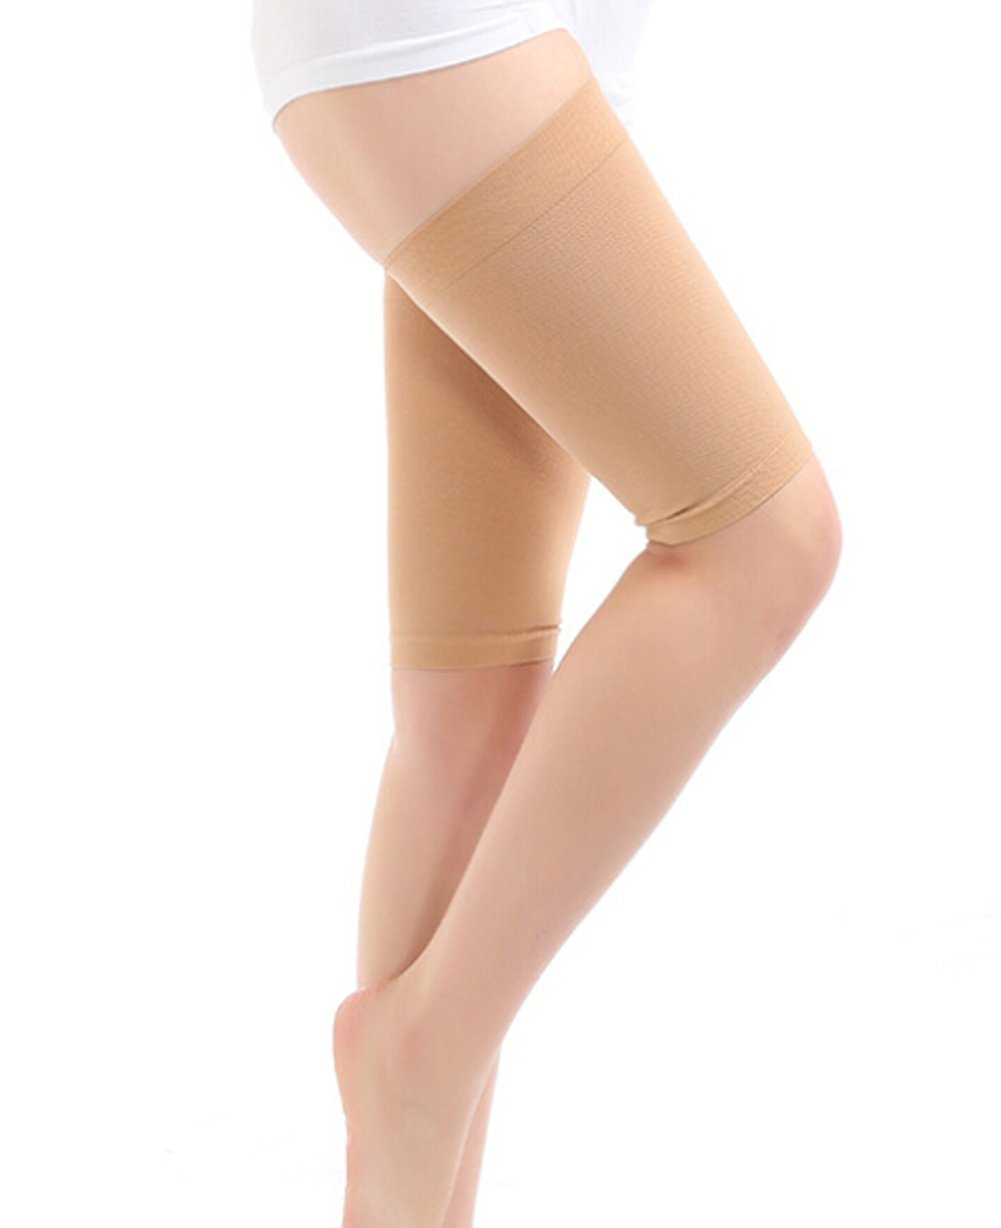 d9b745a7c3 Get Quotations · ieasysexy Hot Sale Elastic Breathable Stretch Skinny Leg  Weight Loss Wrap Belt Massager Slimming Thigh Leg